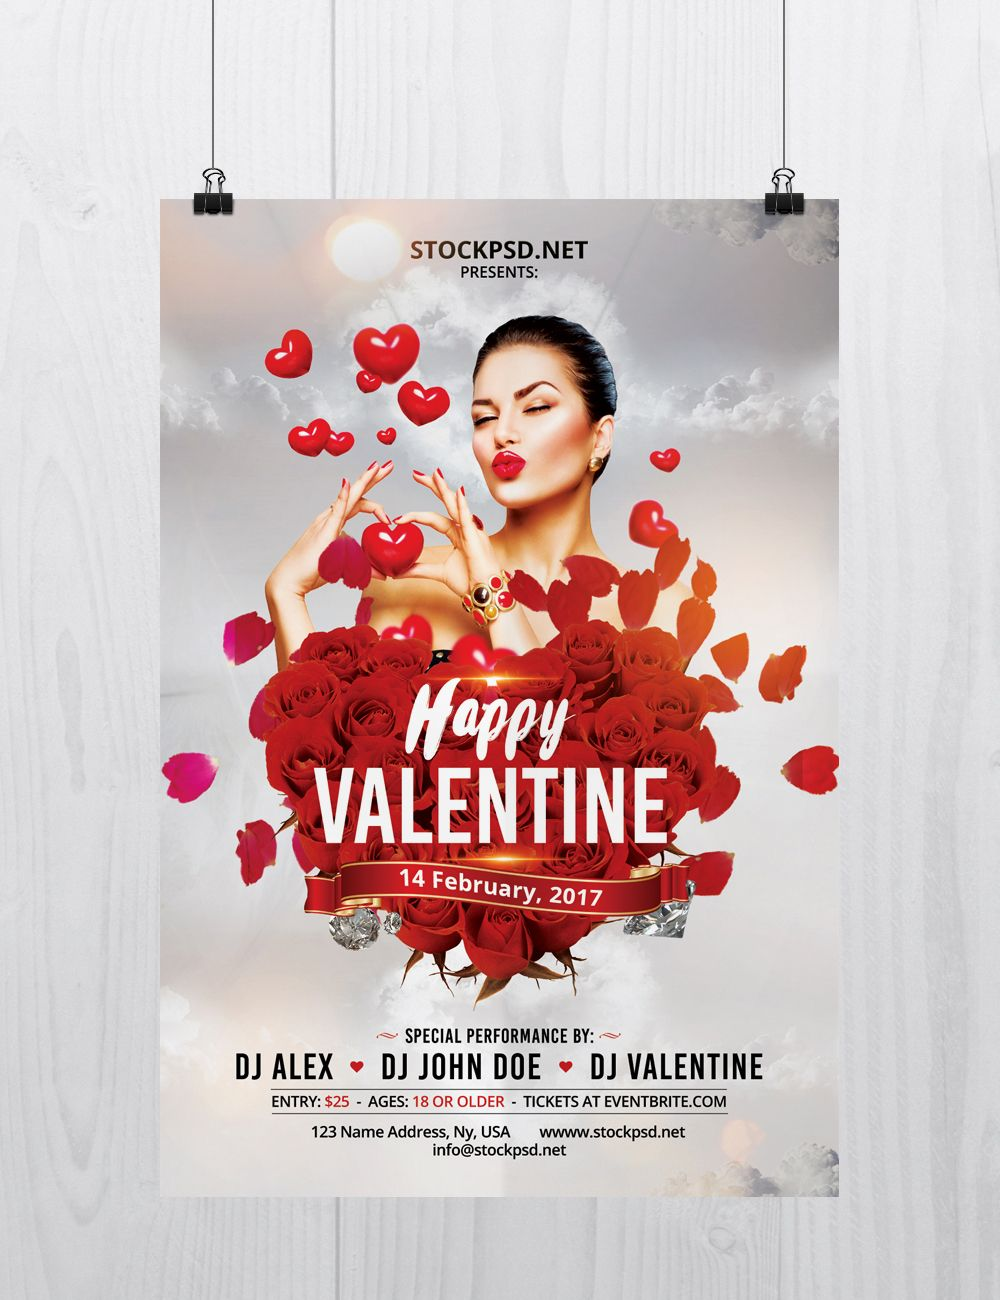 Happy Valentines Day Flyer Is A Free Psd Flyer Template To Download This Flyer Will Be Perfect For Free Psd Flyer Templates Free Psd Flyer Psd Flyer Templates